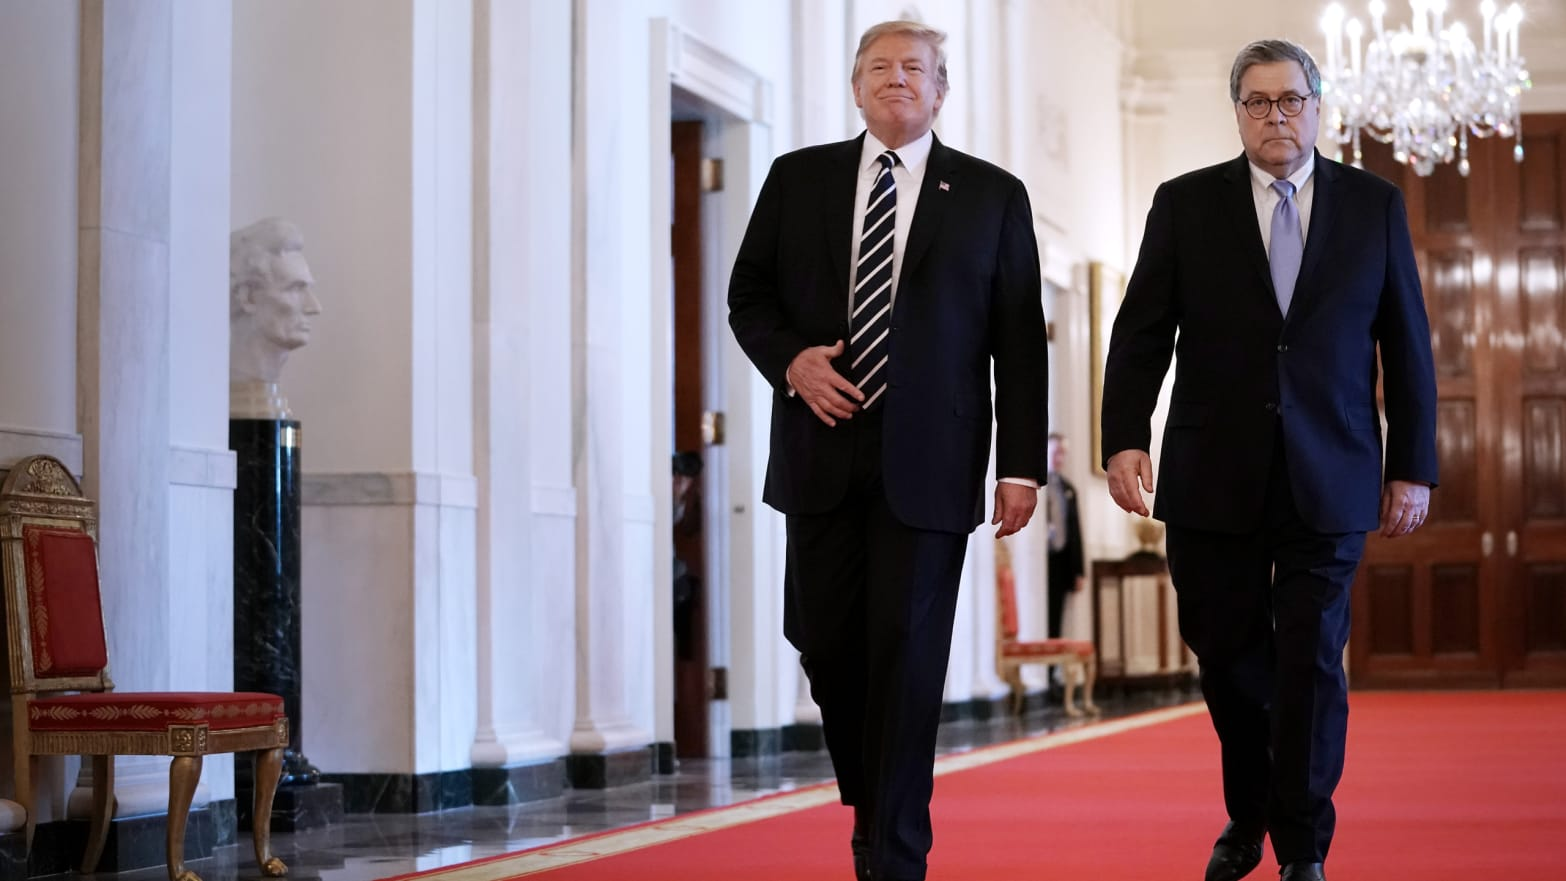 Trump Gives Attorney General William Barr Authority to Declassify Documents in Russia Investigation Probe